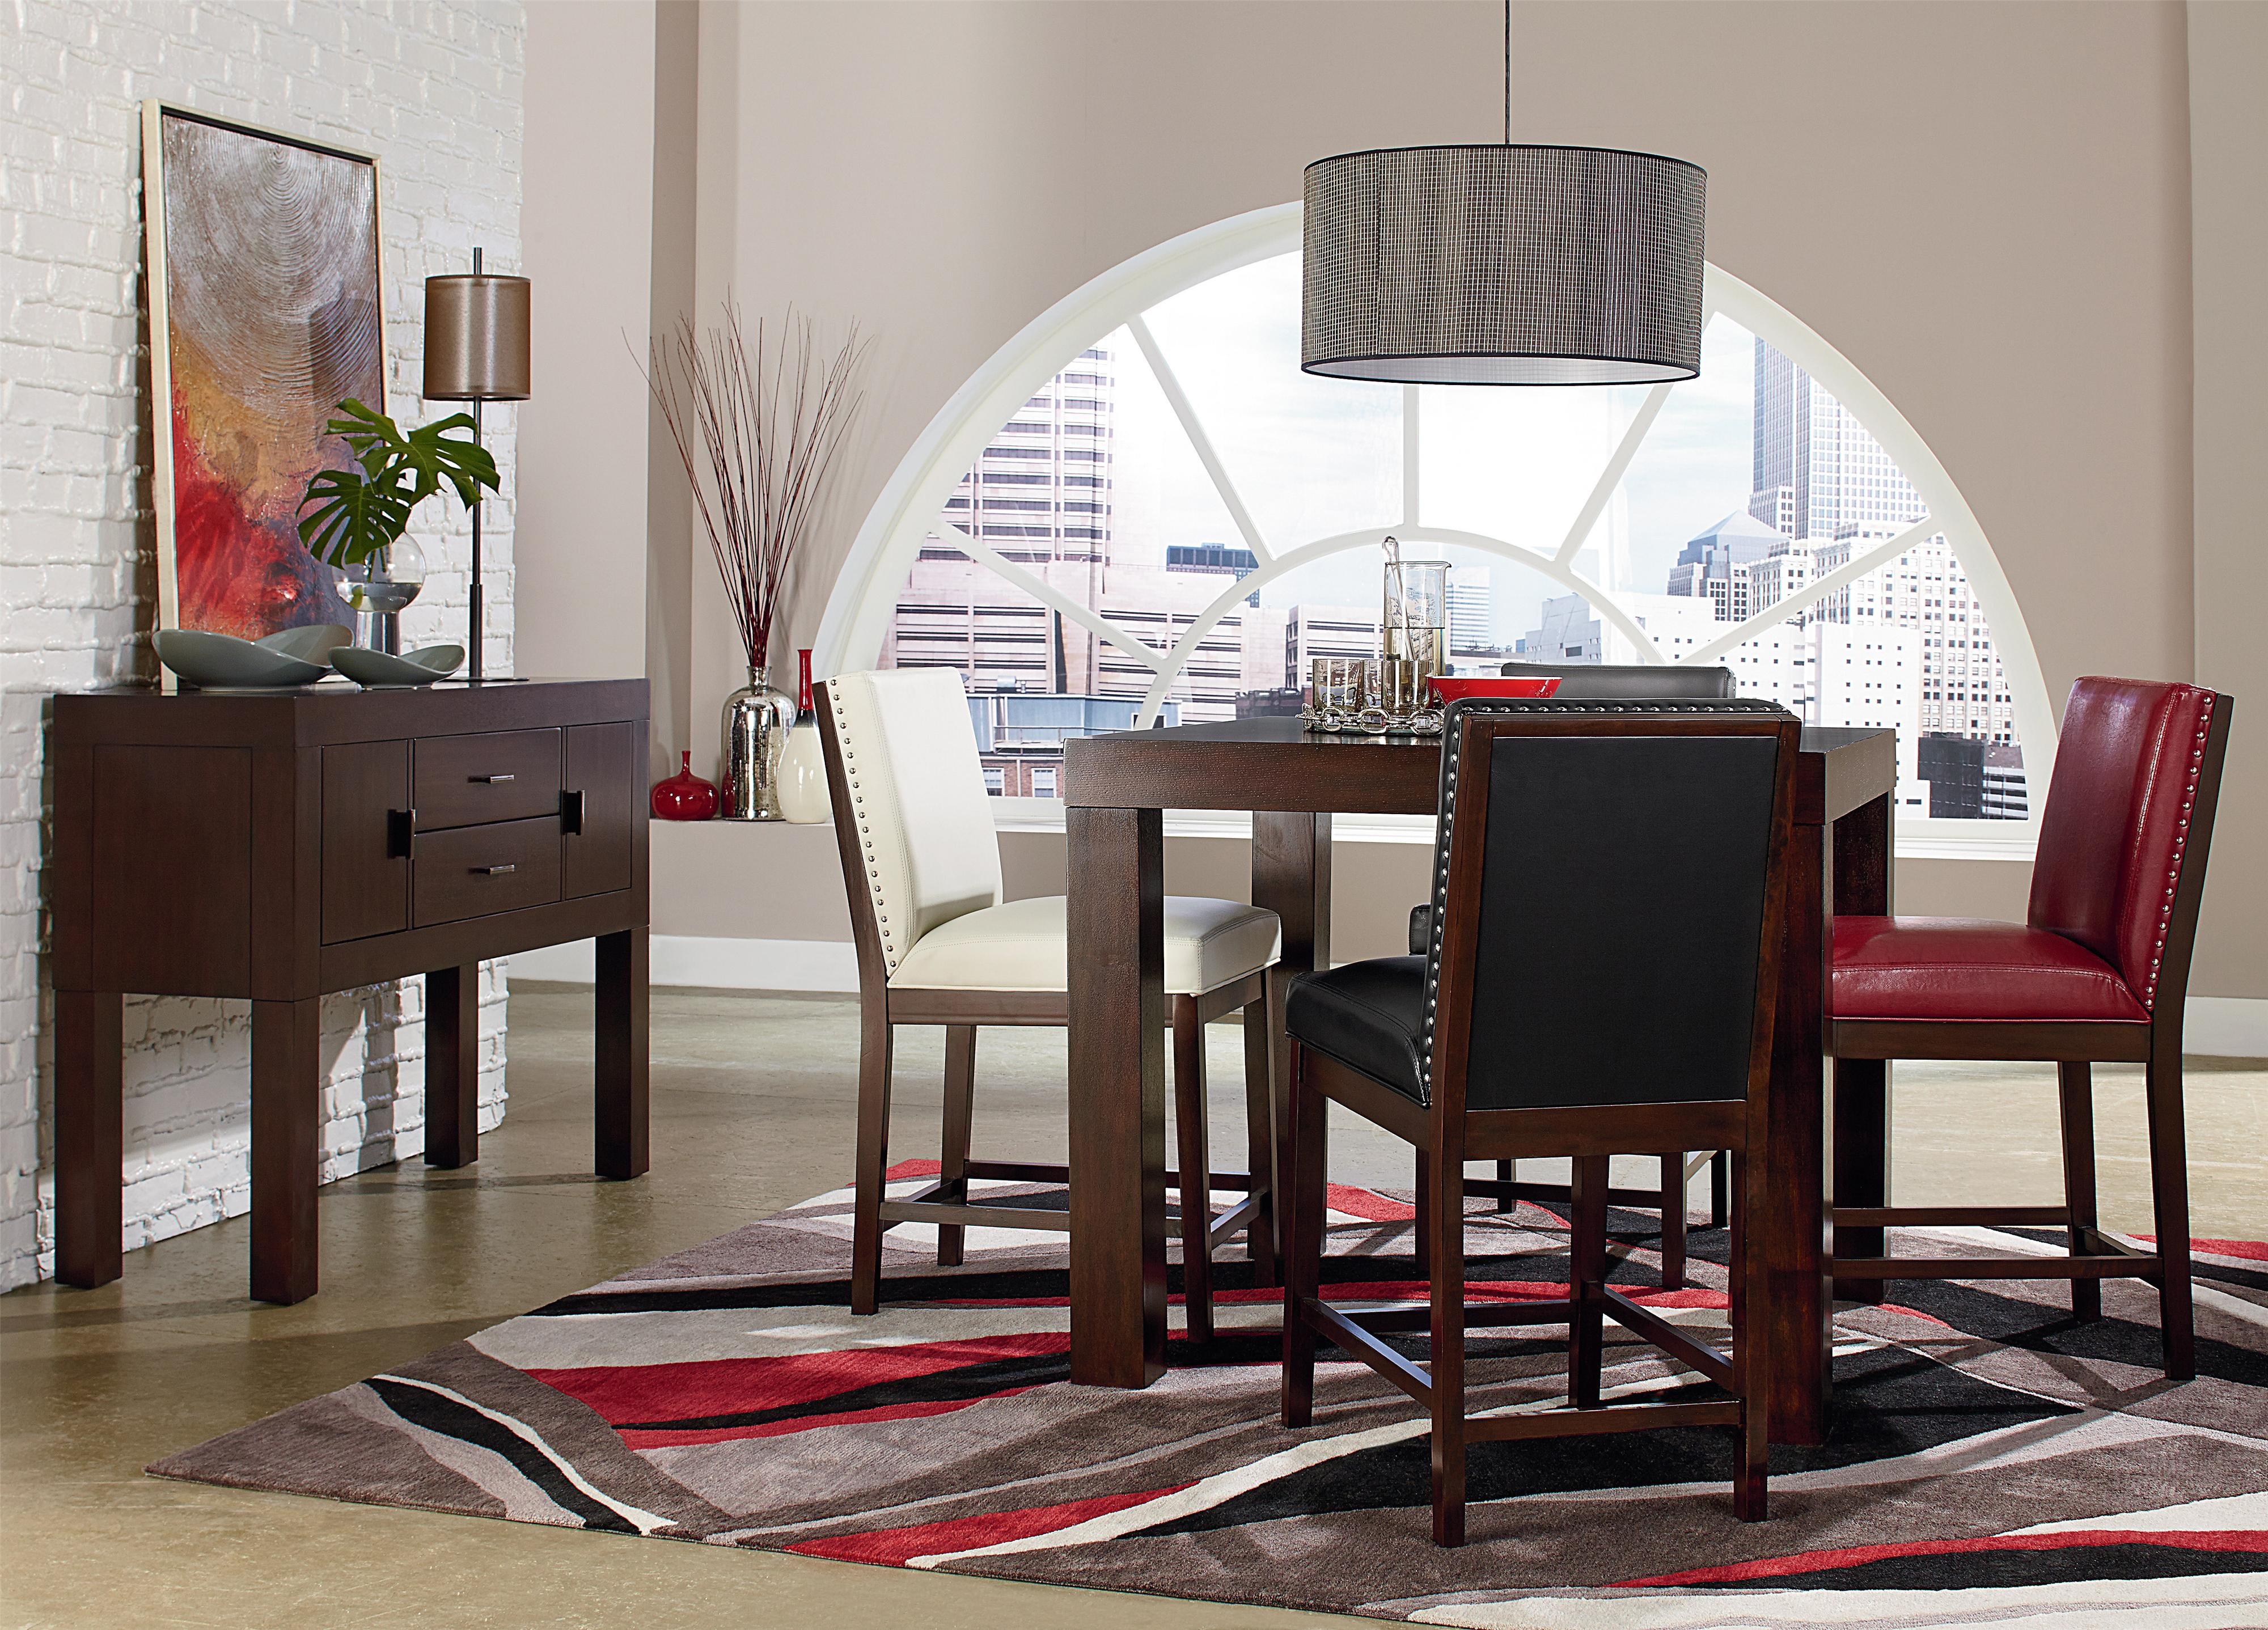 Standard Furniture Couture Elegance Dining Room Group - Item Number: 10560 C Dining Room Group 4